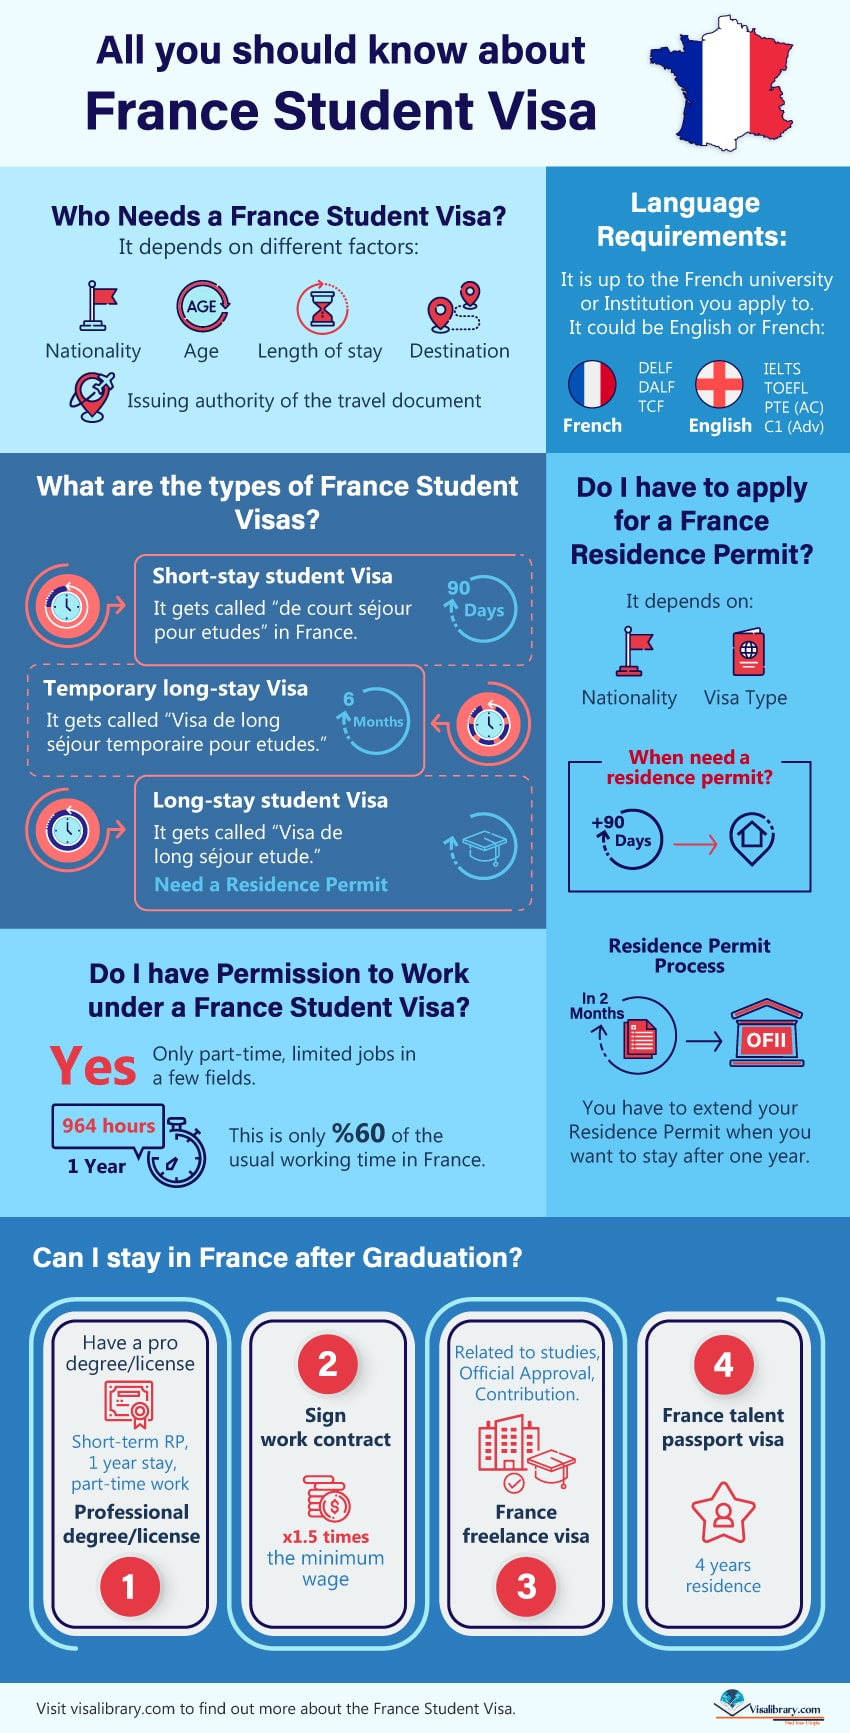 Infographic Do I have to Apply for a France Residence Permit